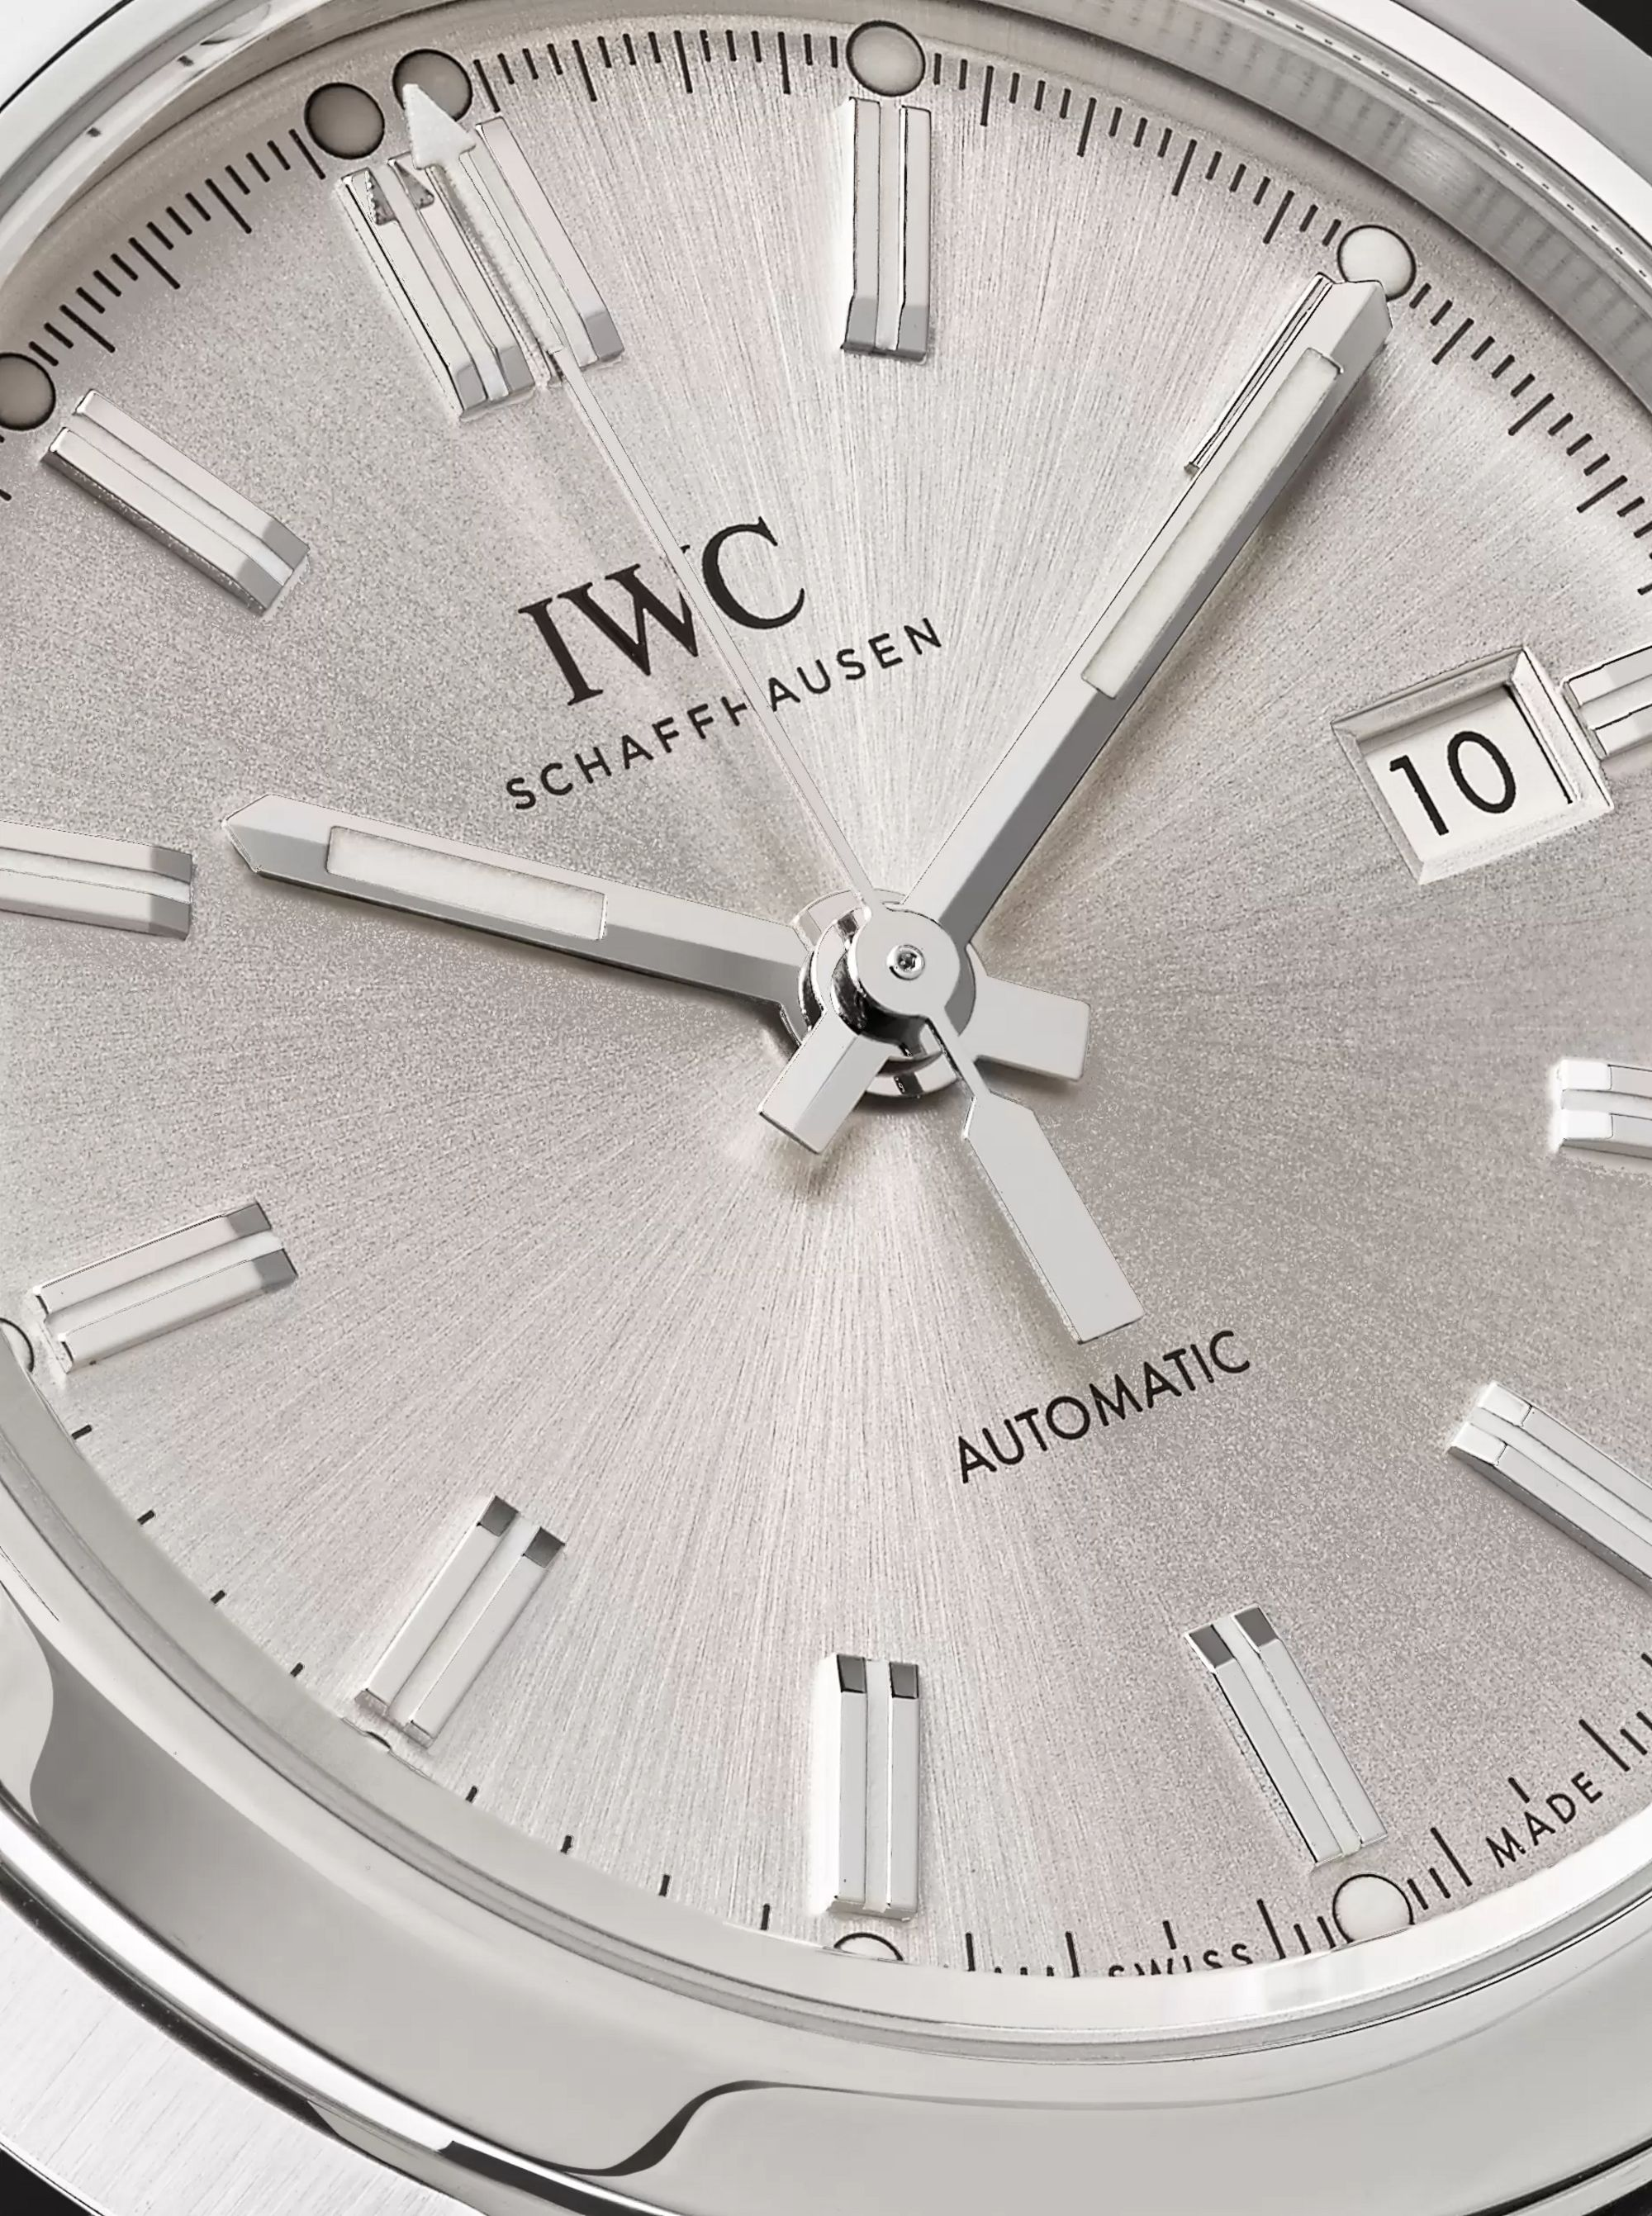 IWC SCHAFFHAUSEN Ingenieur Automatic 40mm Stainless Steel and Alligator Watch, Ref. No. IW357001